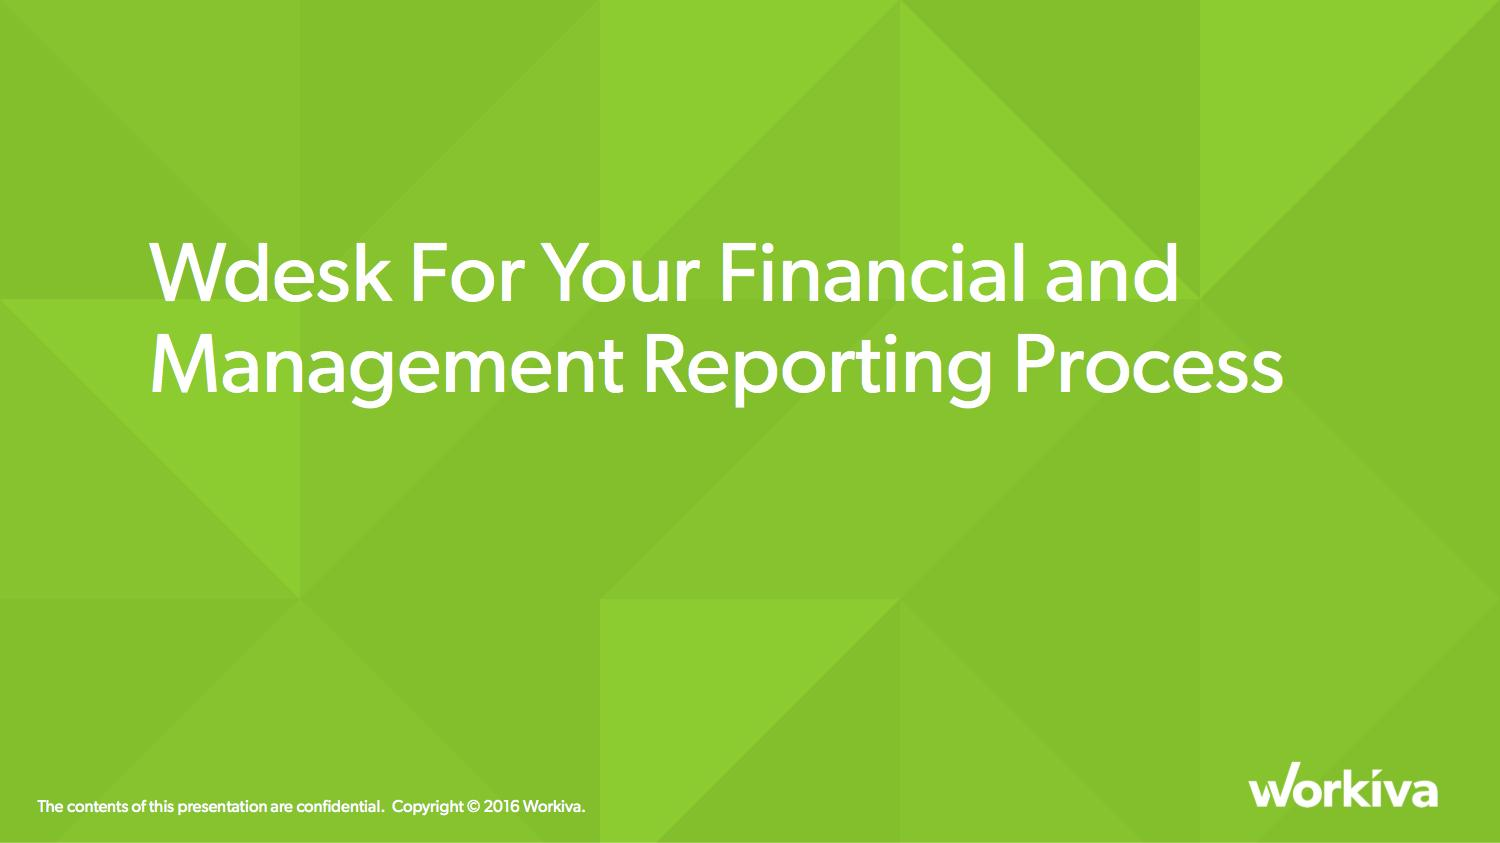 Wdesk for Financial and Management Reporting